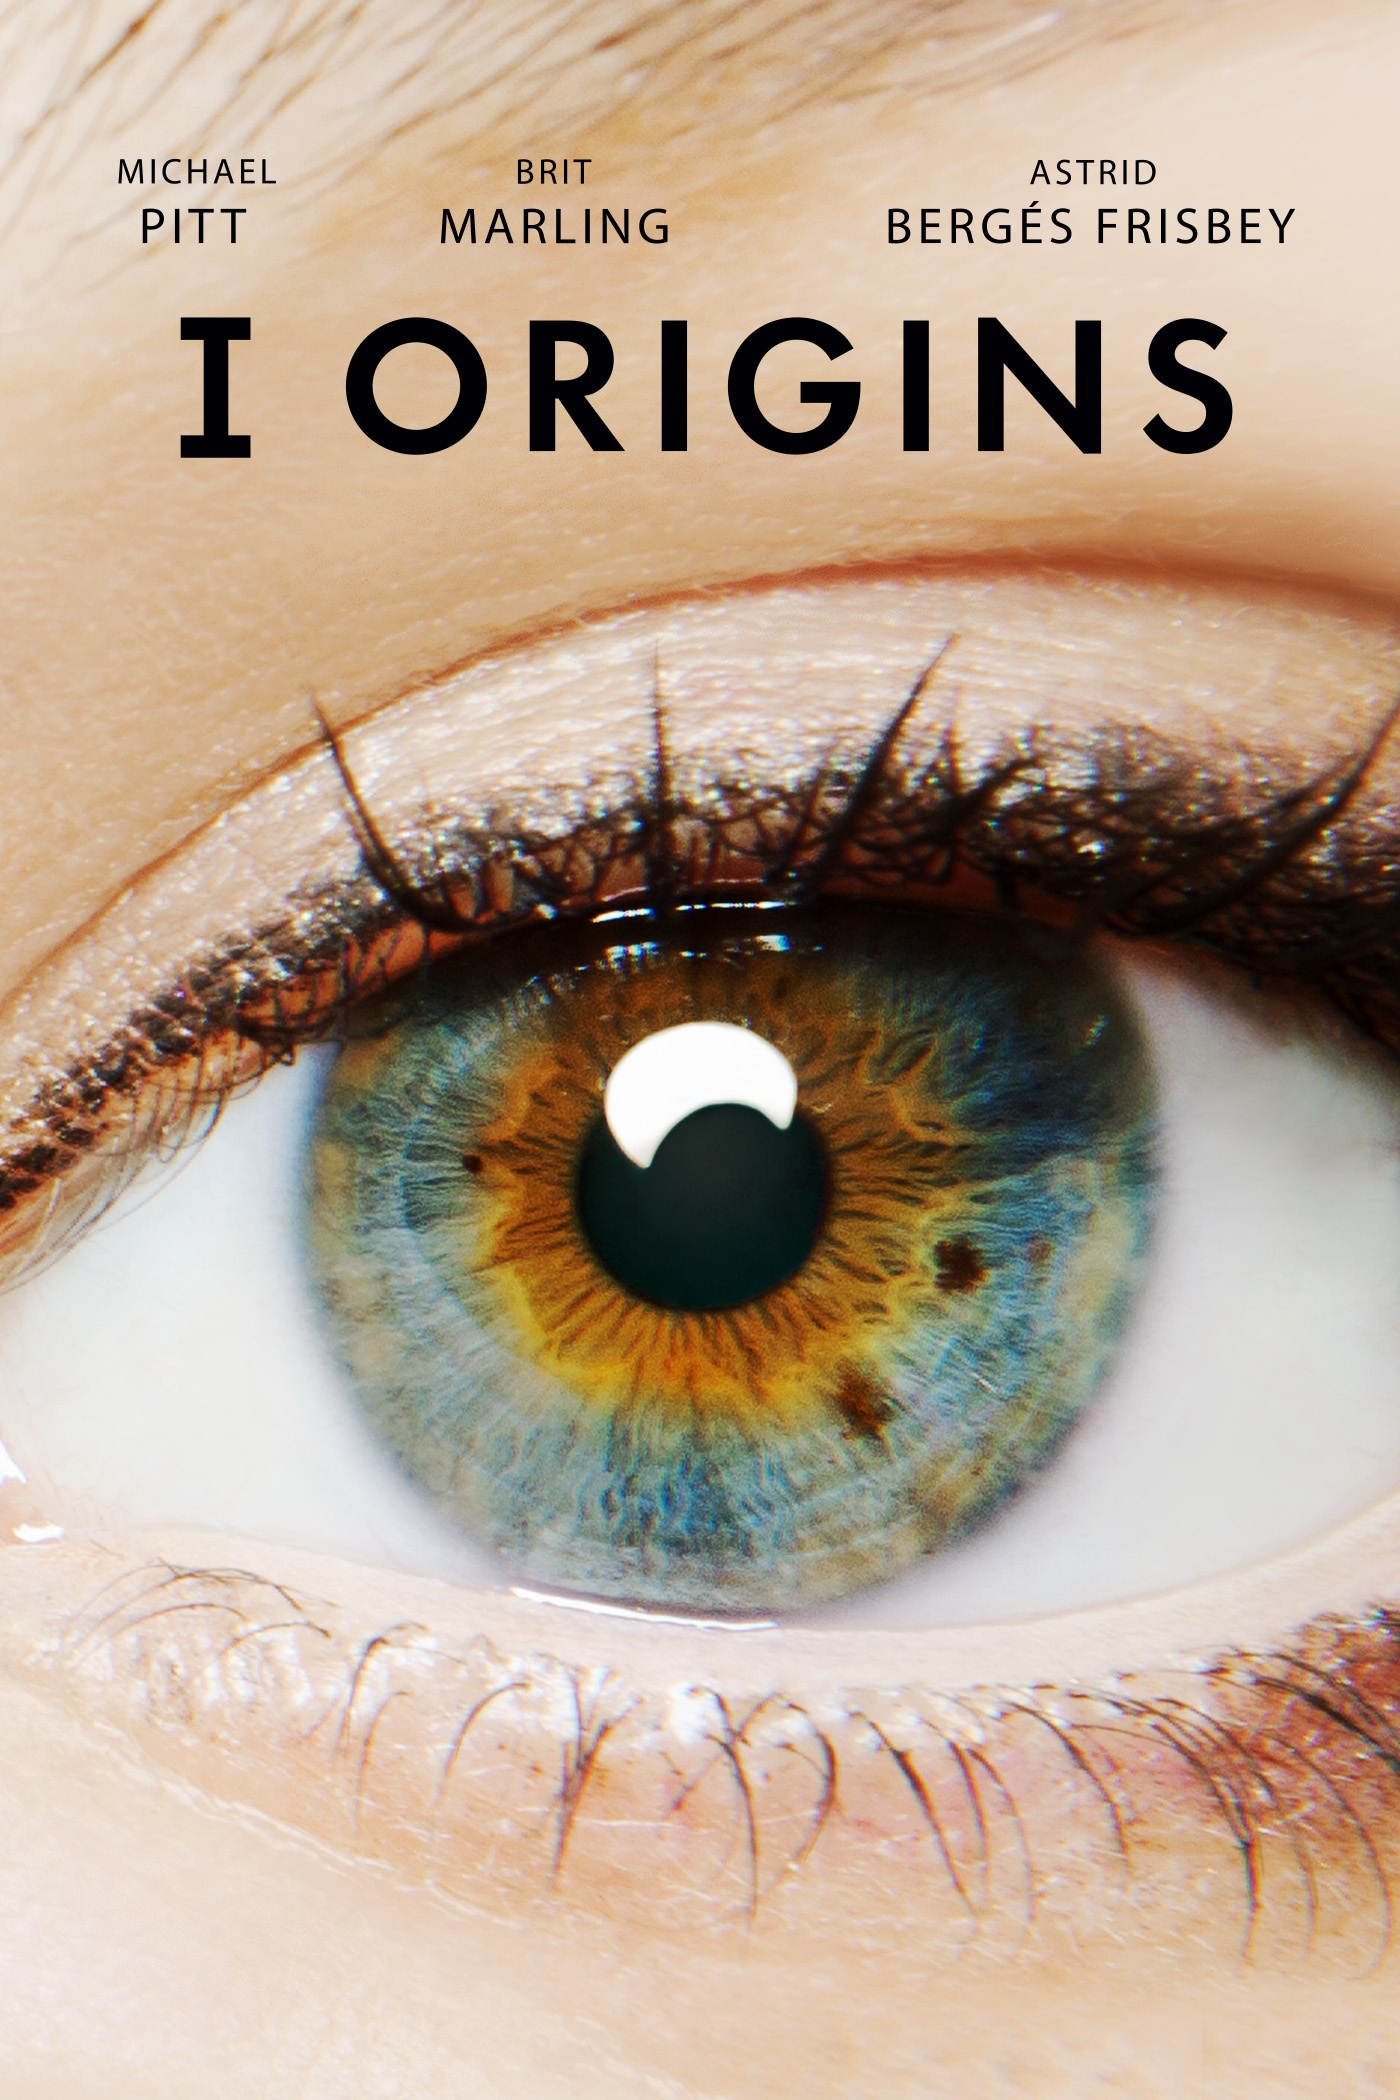 I Origins starring Michael Pitt, Brit Marling and Astrid Berges Frisbey poster image